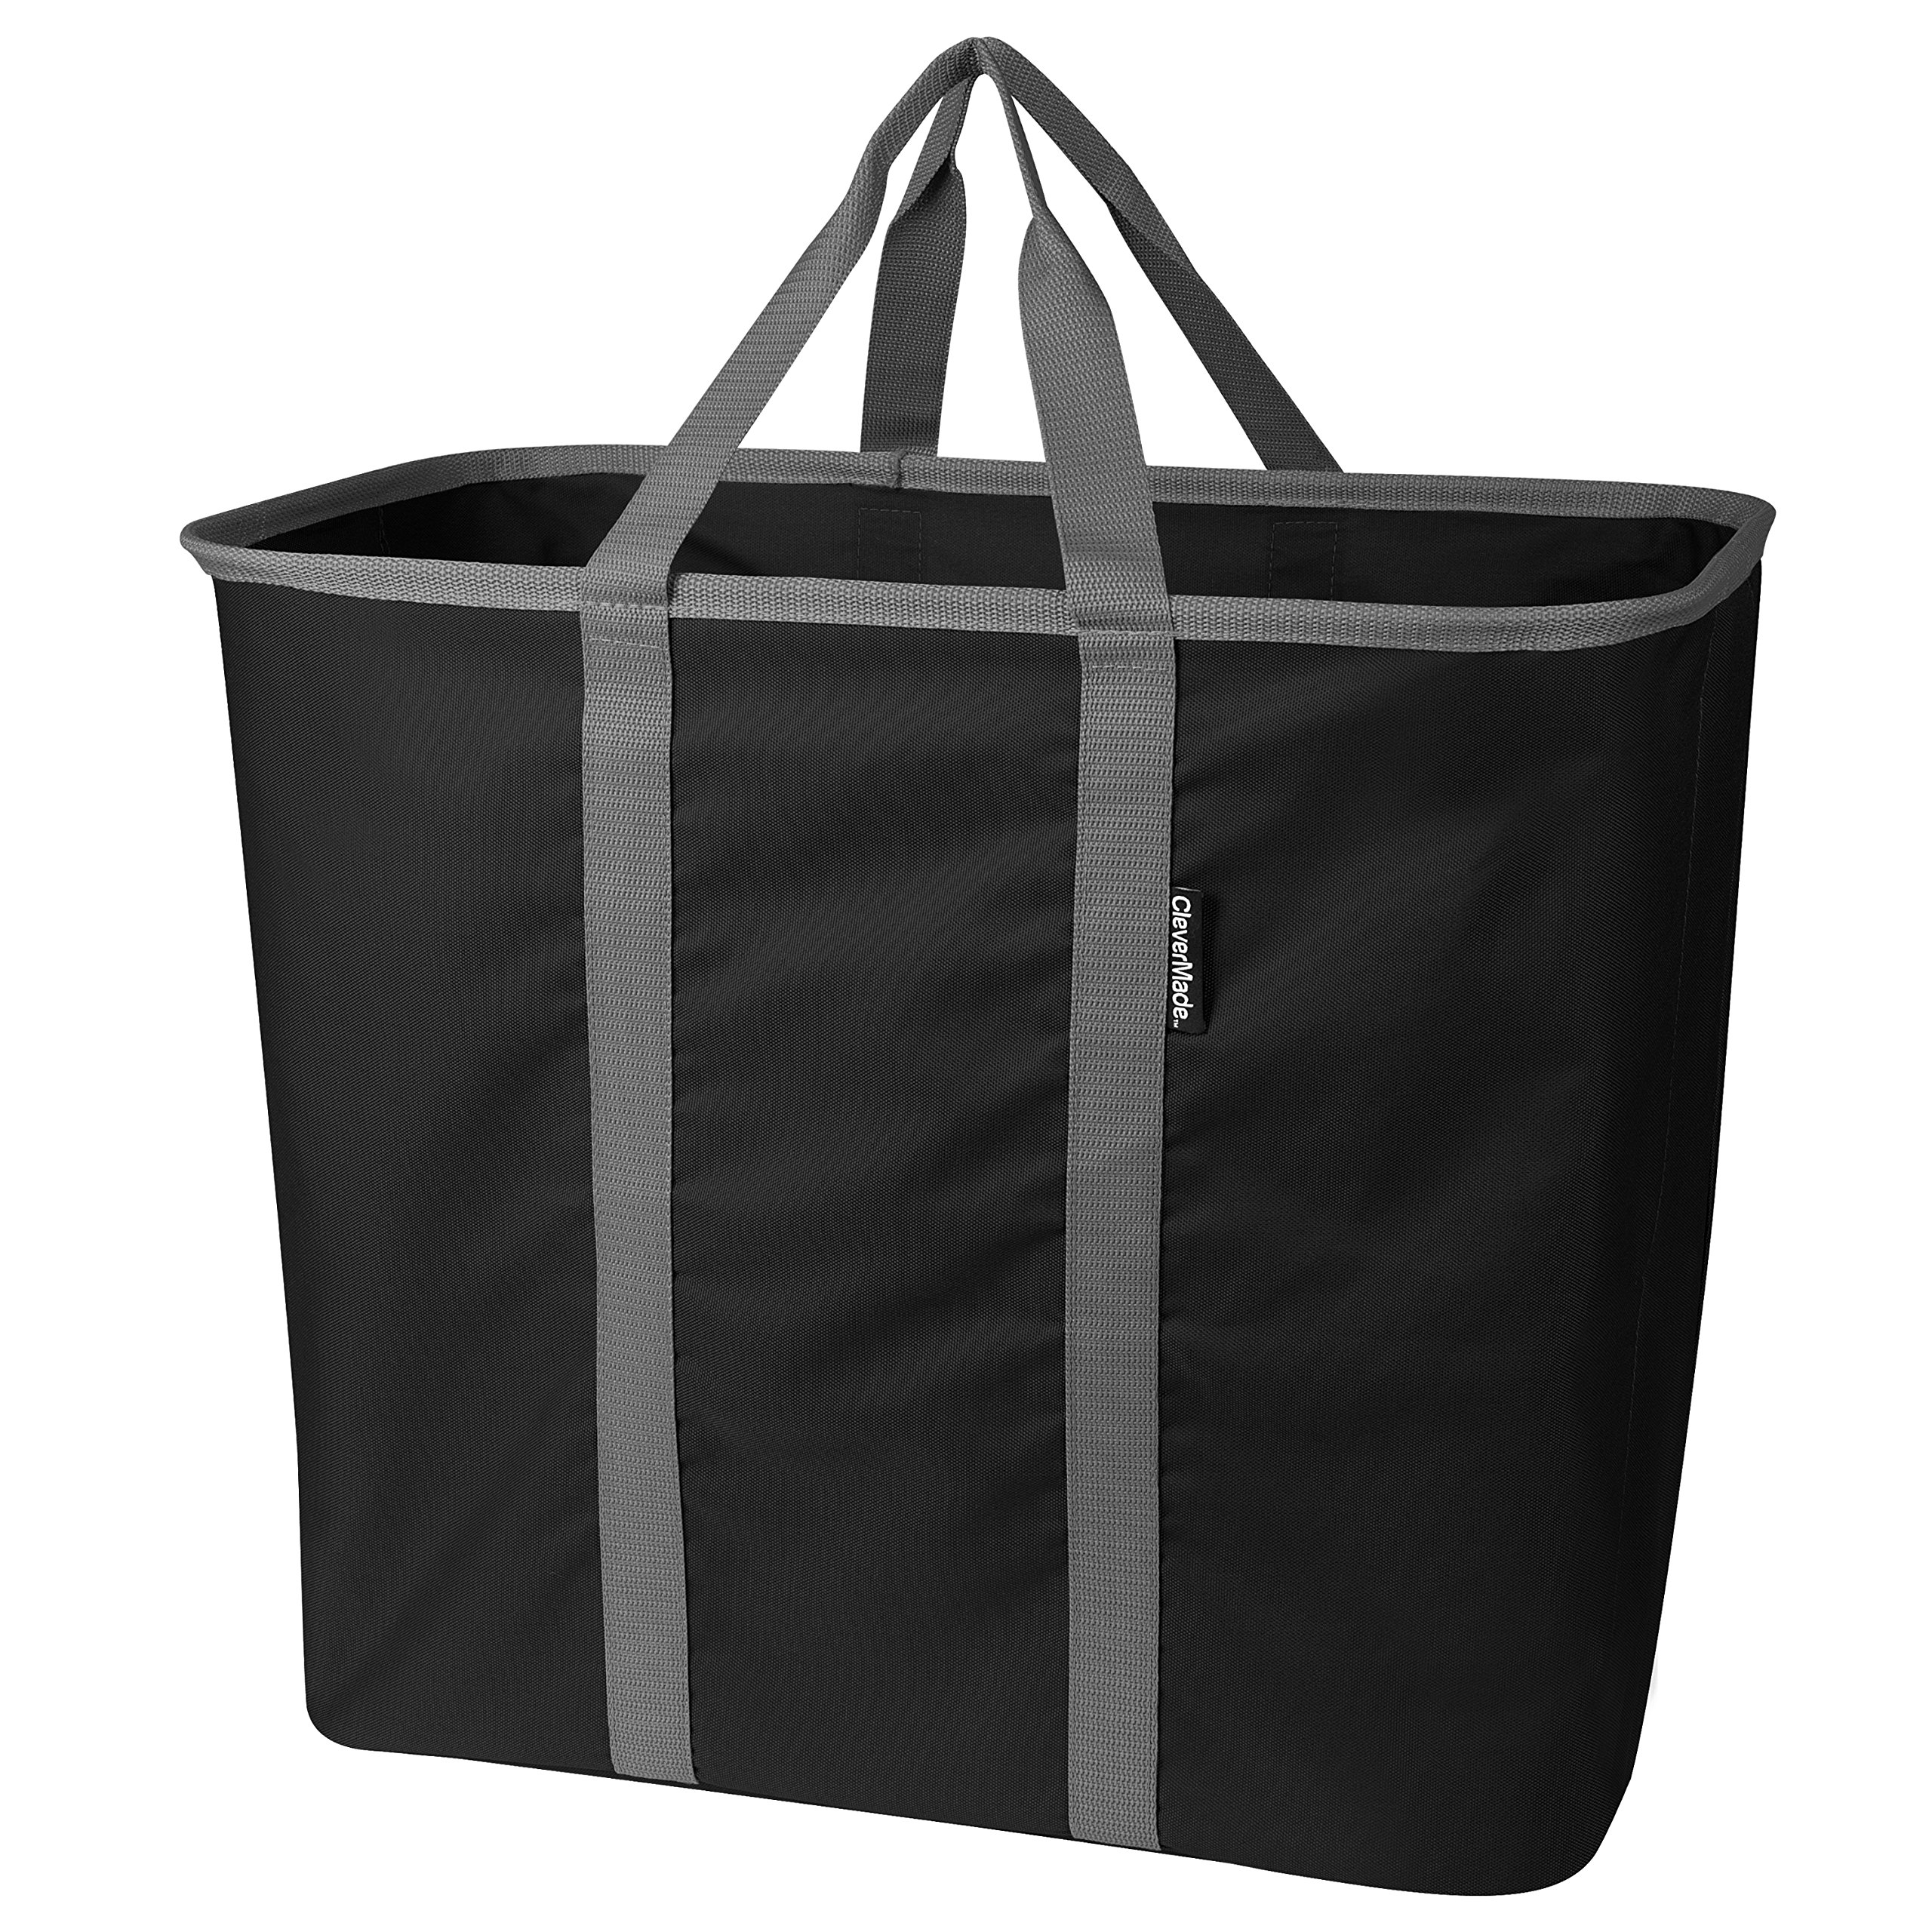 CleverMade Collapsible Laundry Basket, Large Foldable Clothes Hamper Bag, SnapBasket LaundryCaddy CarryAll Pop Up Storage Tote, Black/Grey